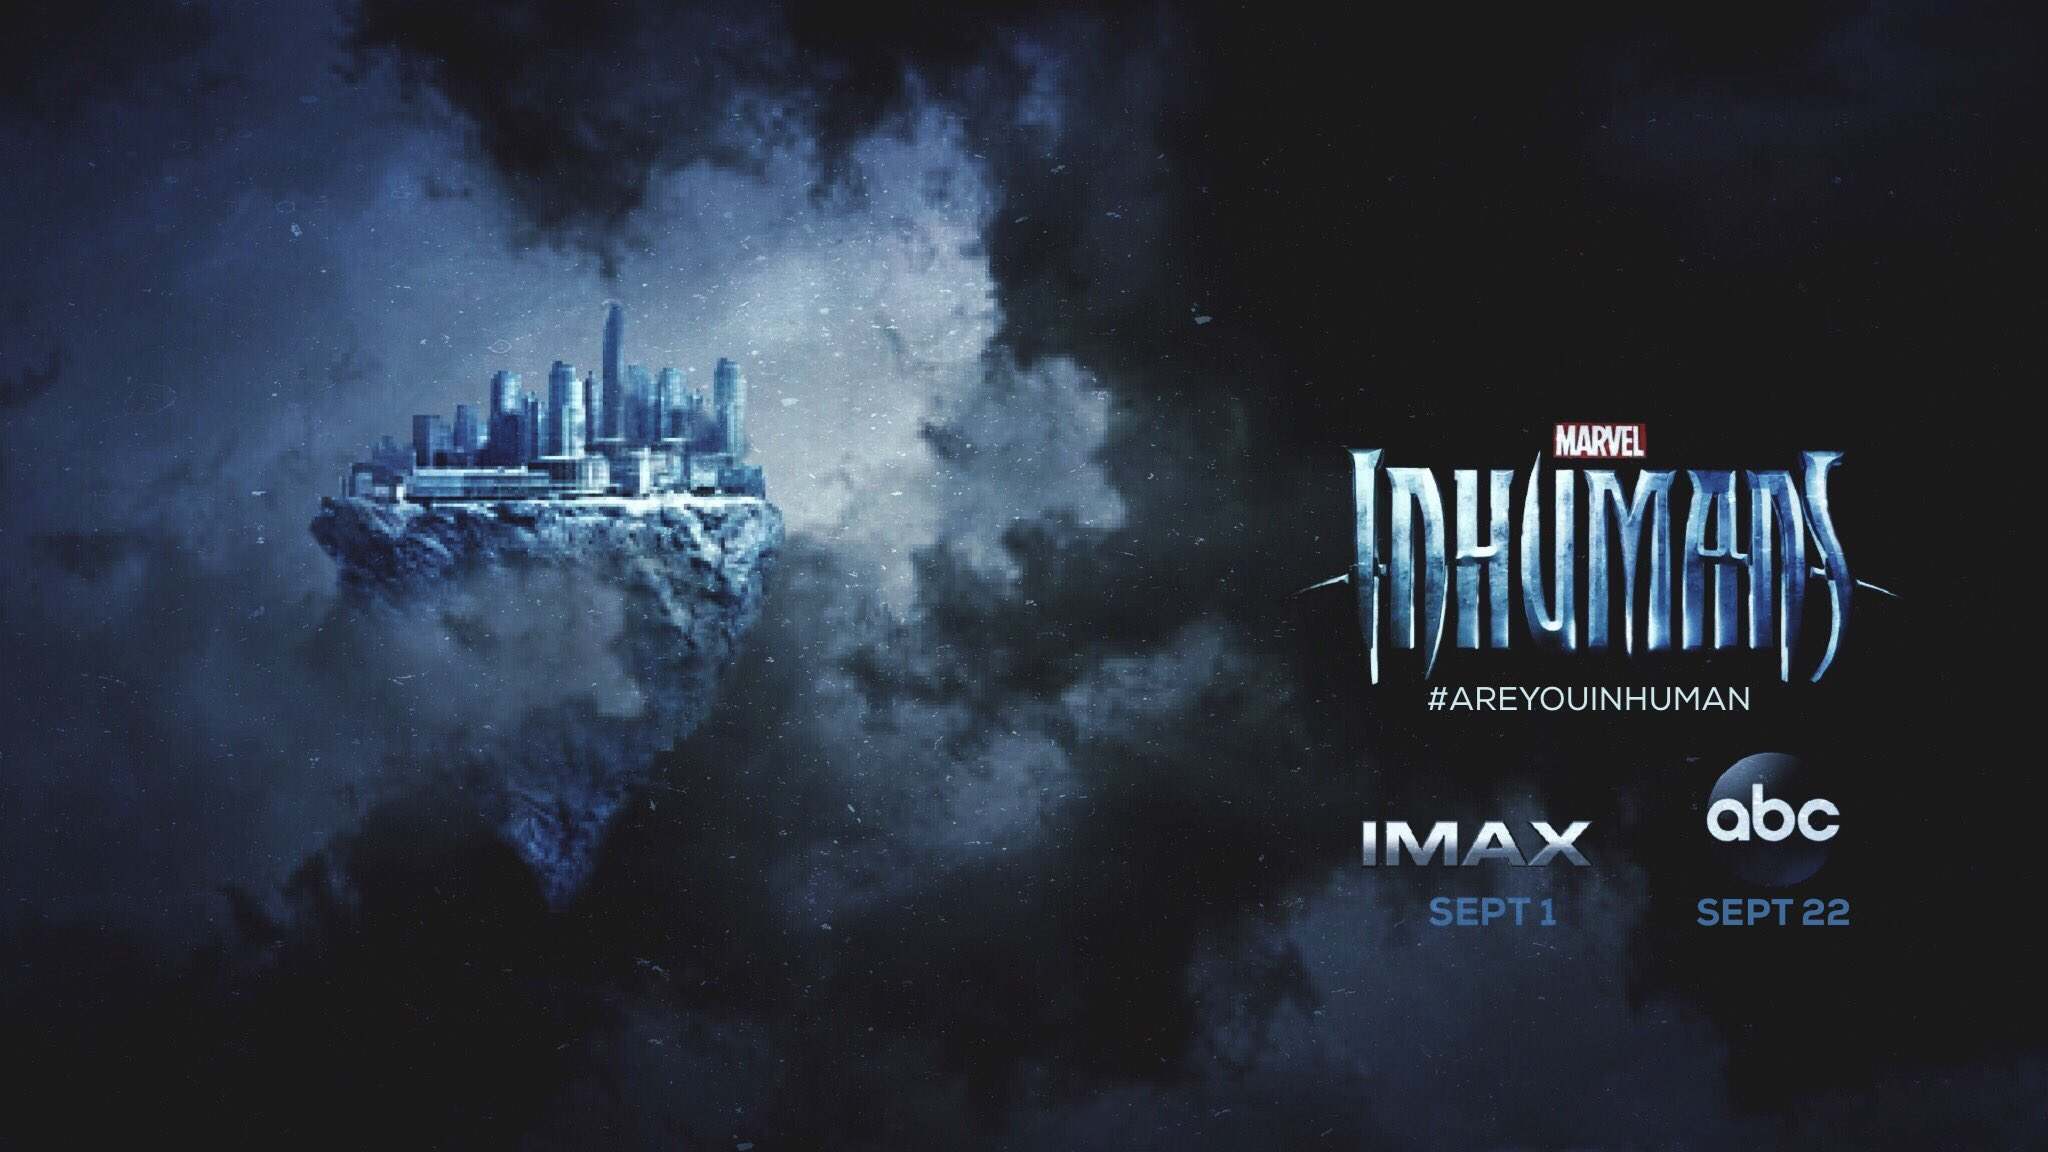 Marvel's Inhumans Reveals New Poster, ABC Premiere Date